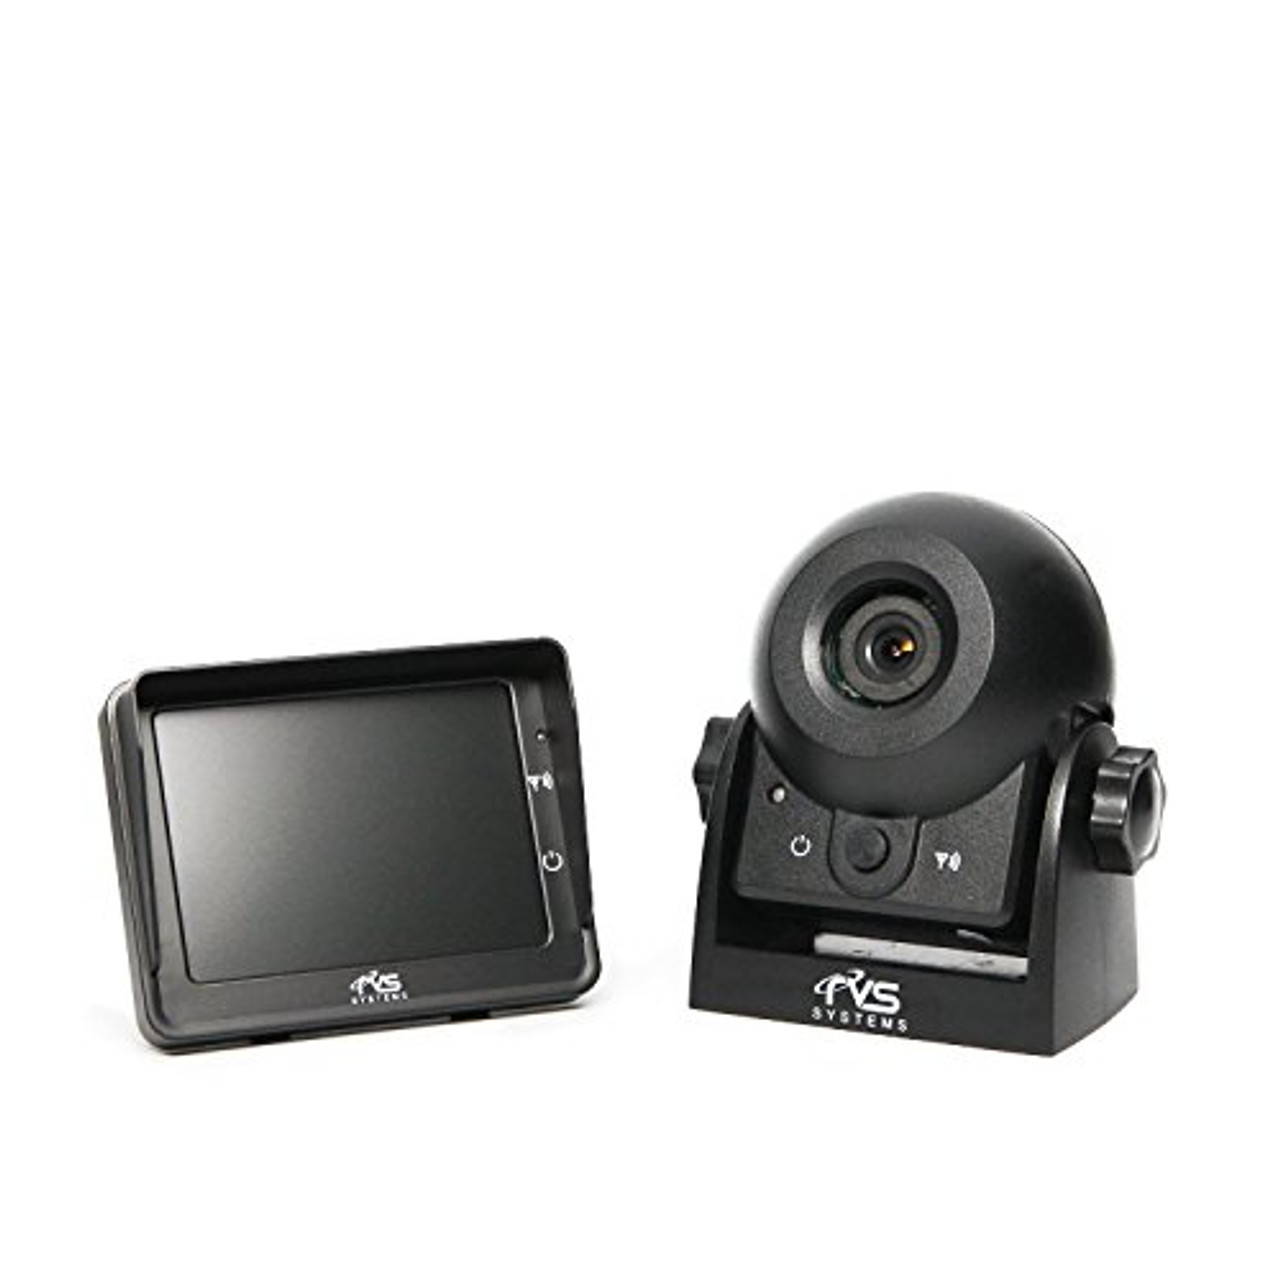 Rear View Safety RVS-83112 Video Camera with 3.5-Inch LCD (Black) | 0211XKUTDY7